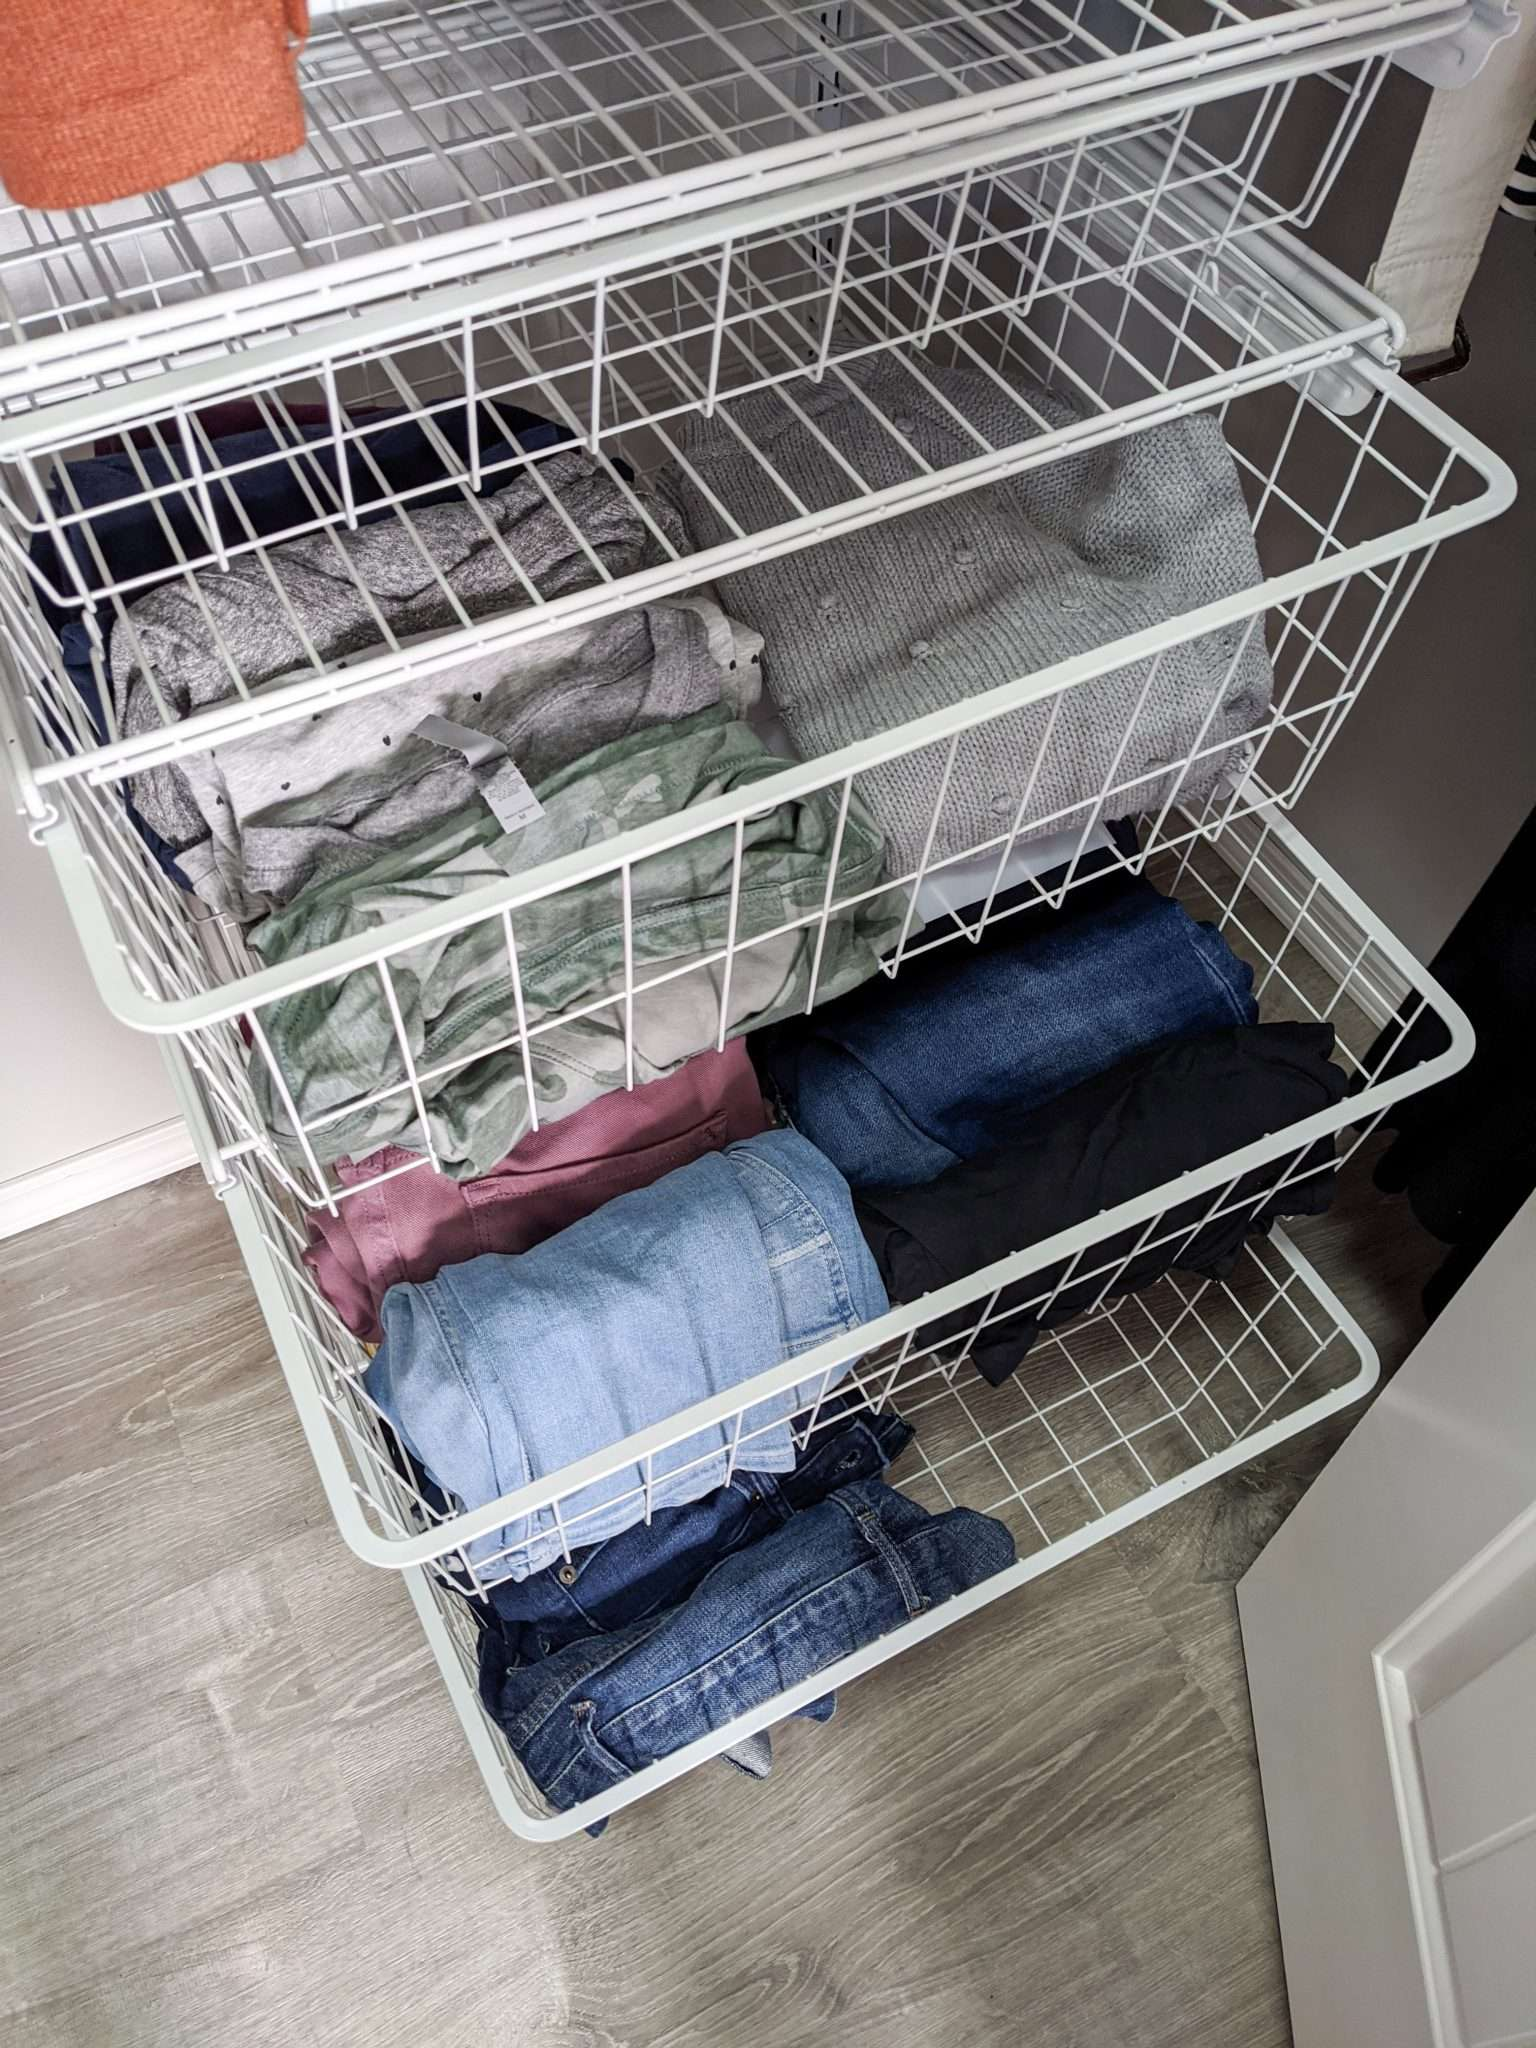 How to organize your closet - the best way to organize your tees, pants, shorts, sweaters so they don't get damaged by hangers